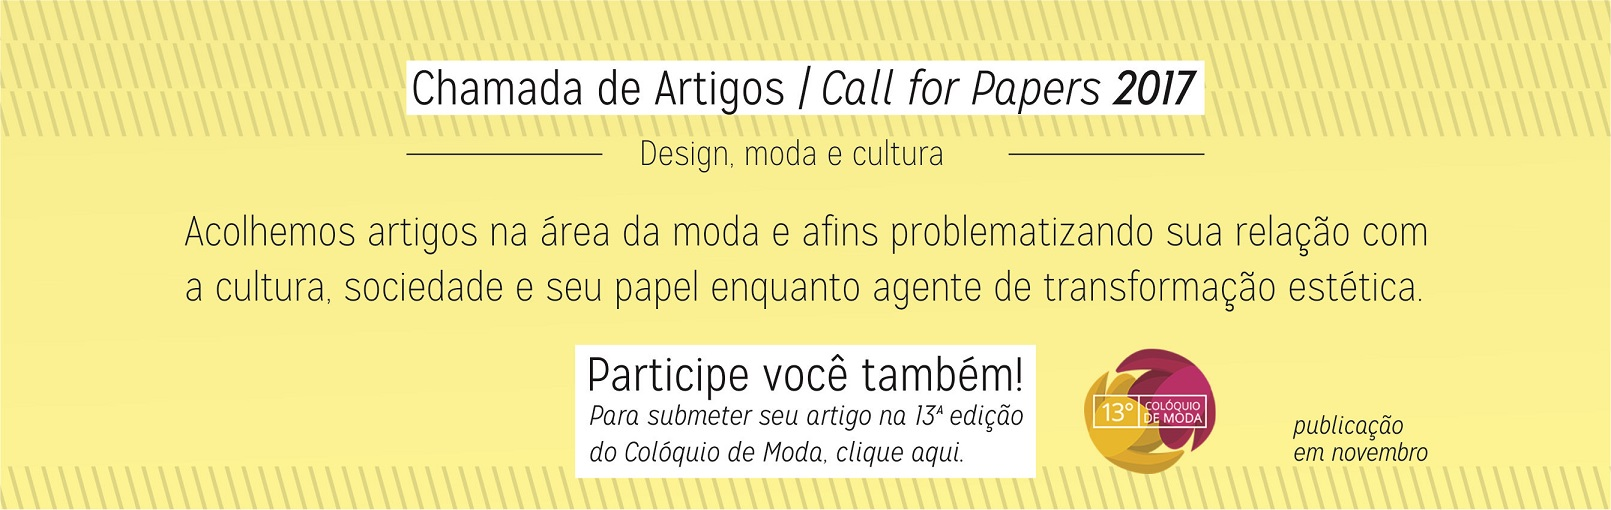 Chamada de artigos / Call for Papers 2017